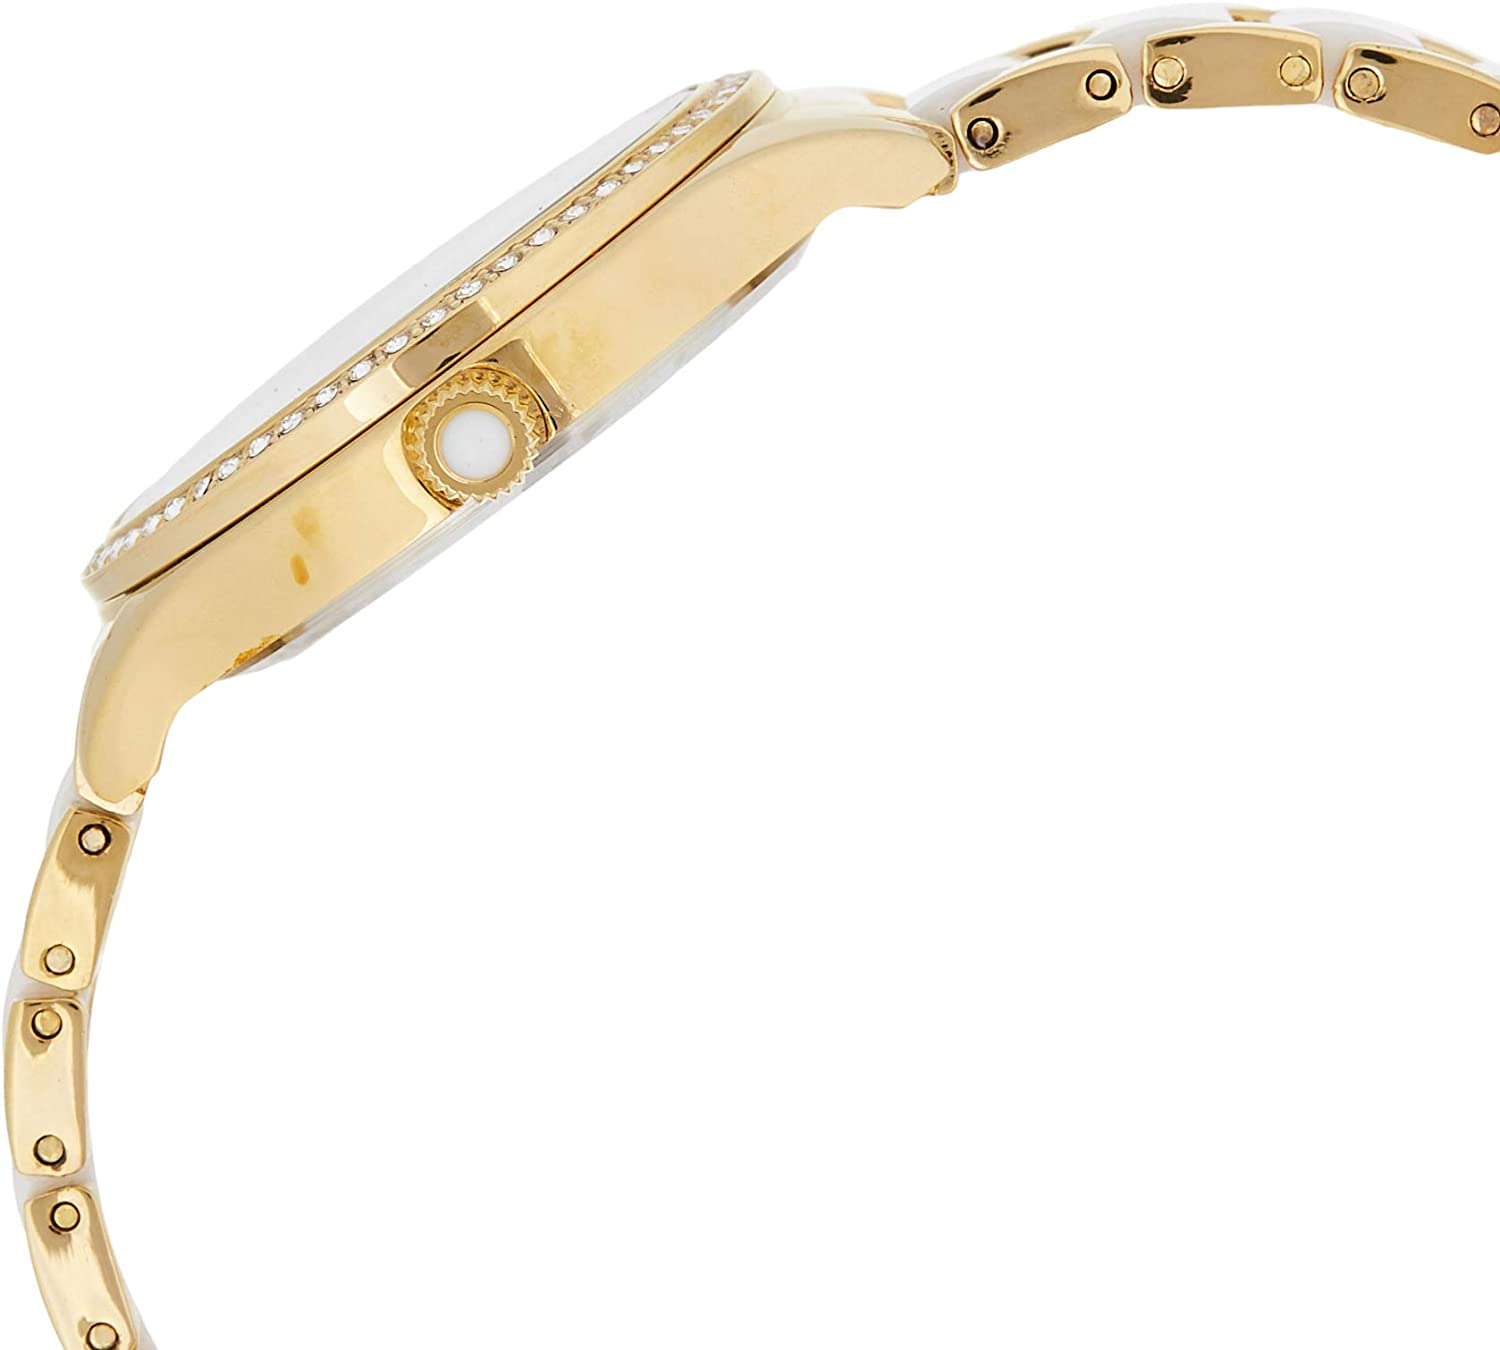 Akribos XXIV AK977 Women's Quartz Diamond Oyster Shell Pattern Bracelet Watch Gold-Tone